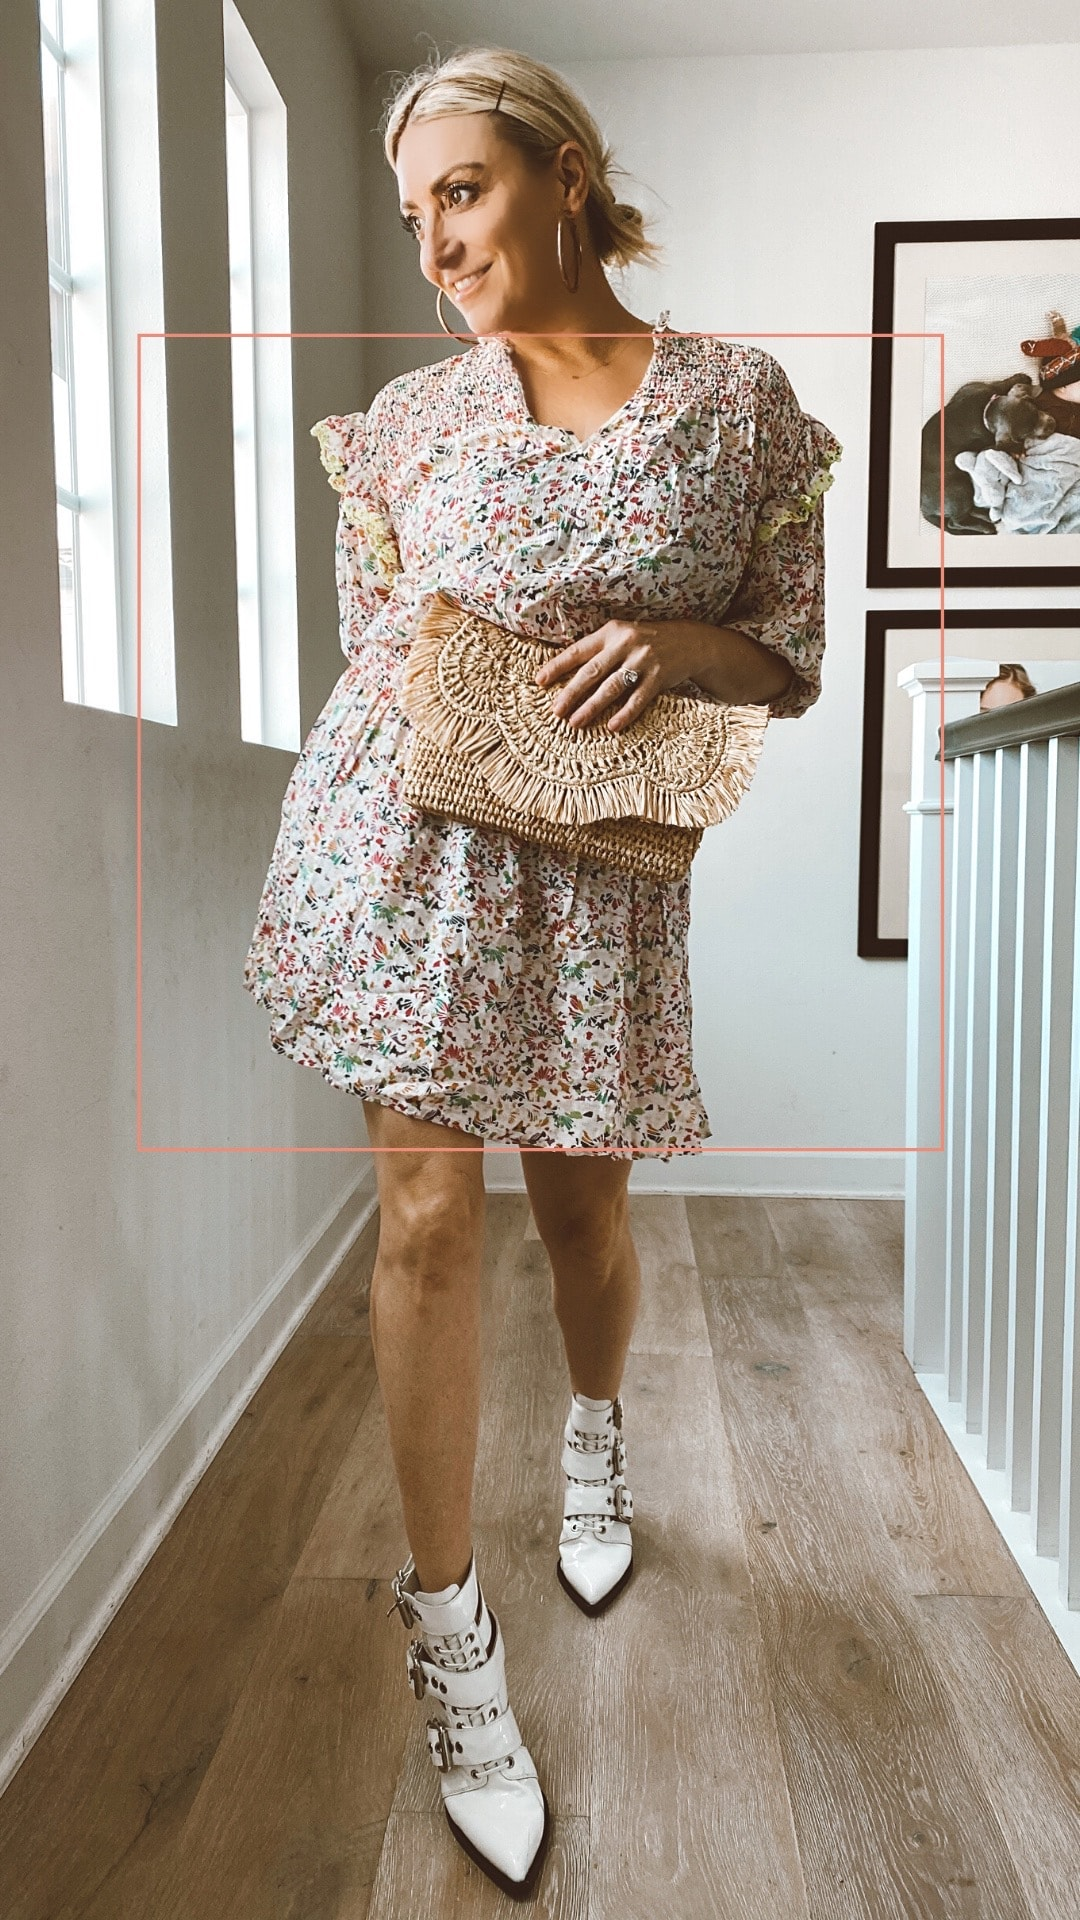 woman in spring outfit